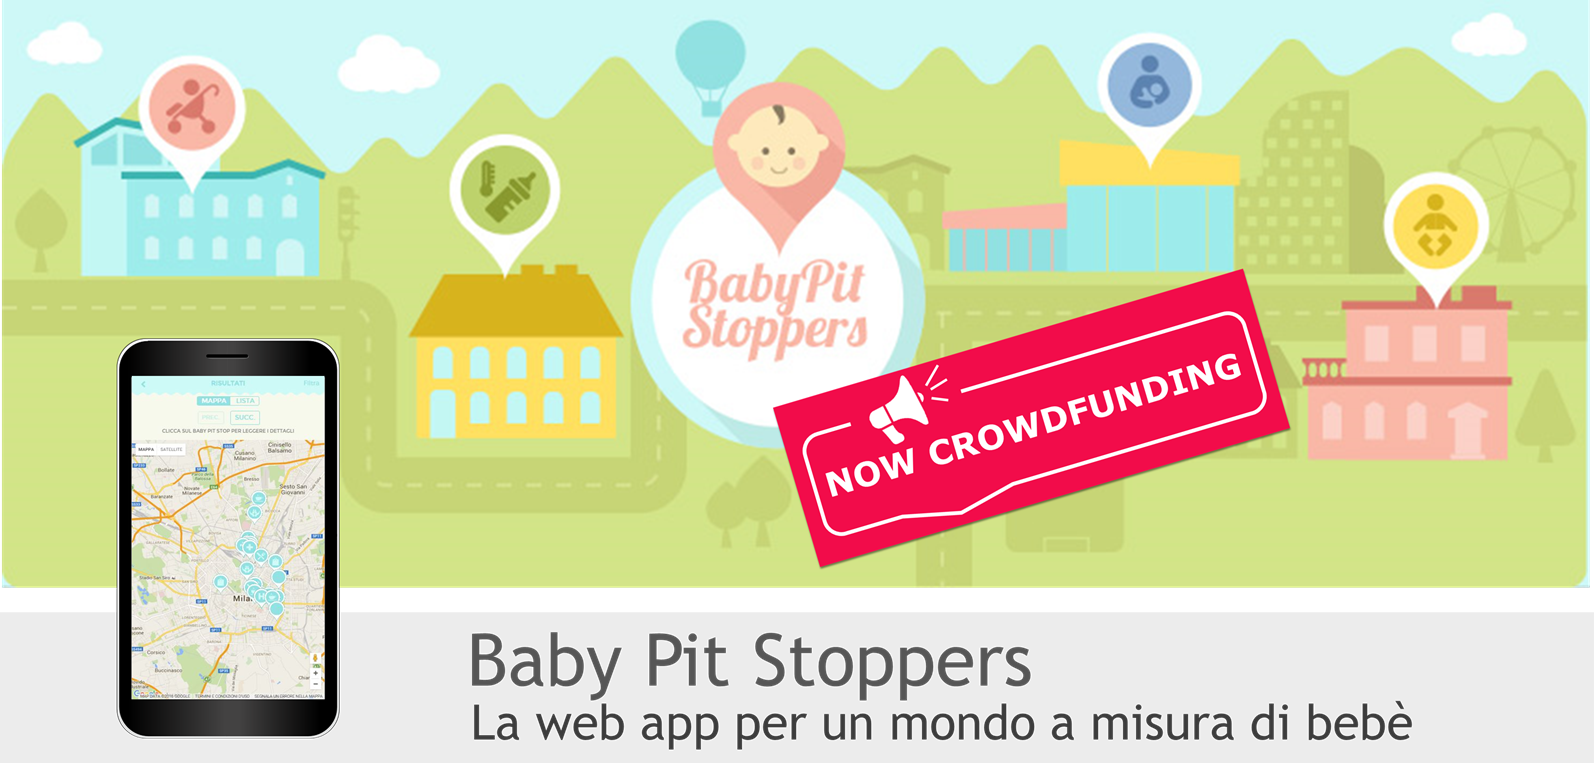 babypitstoppers